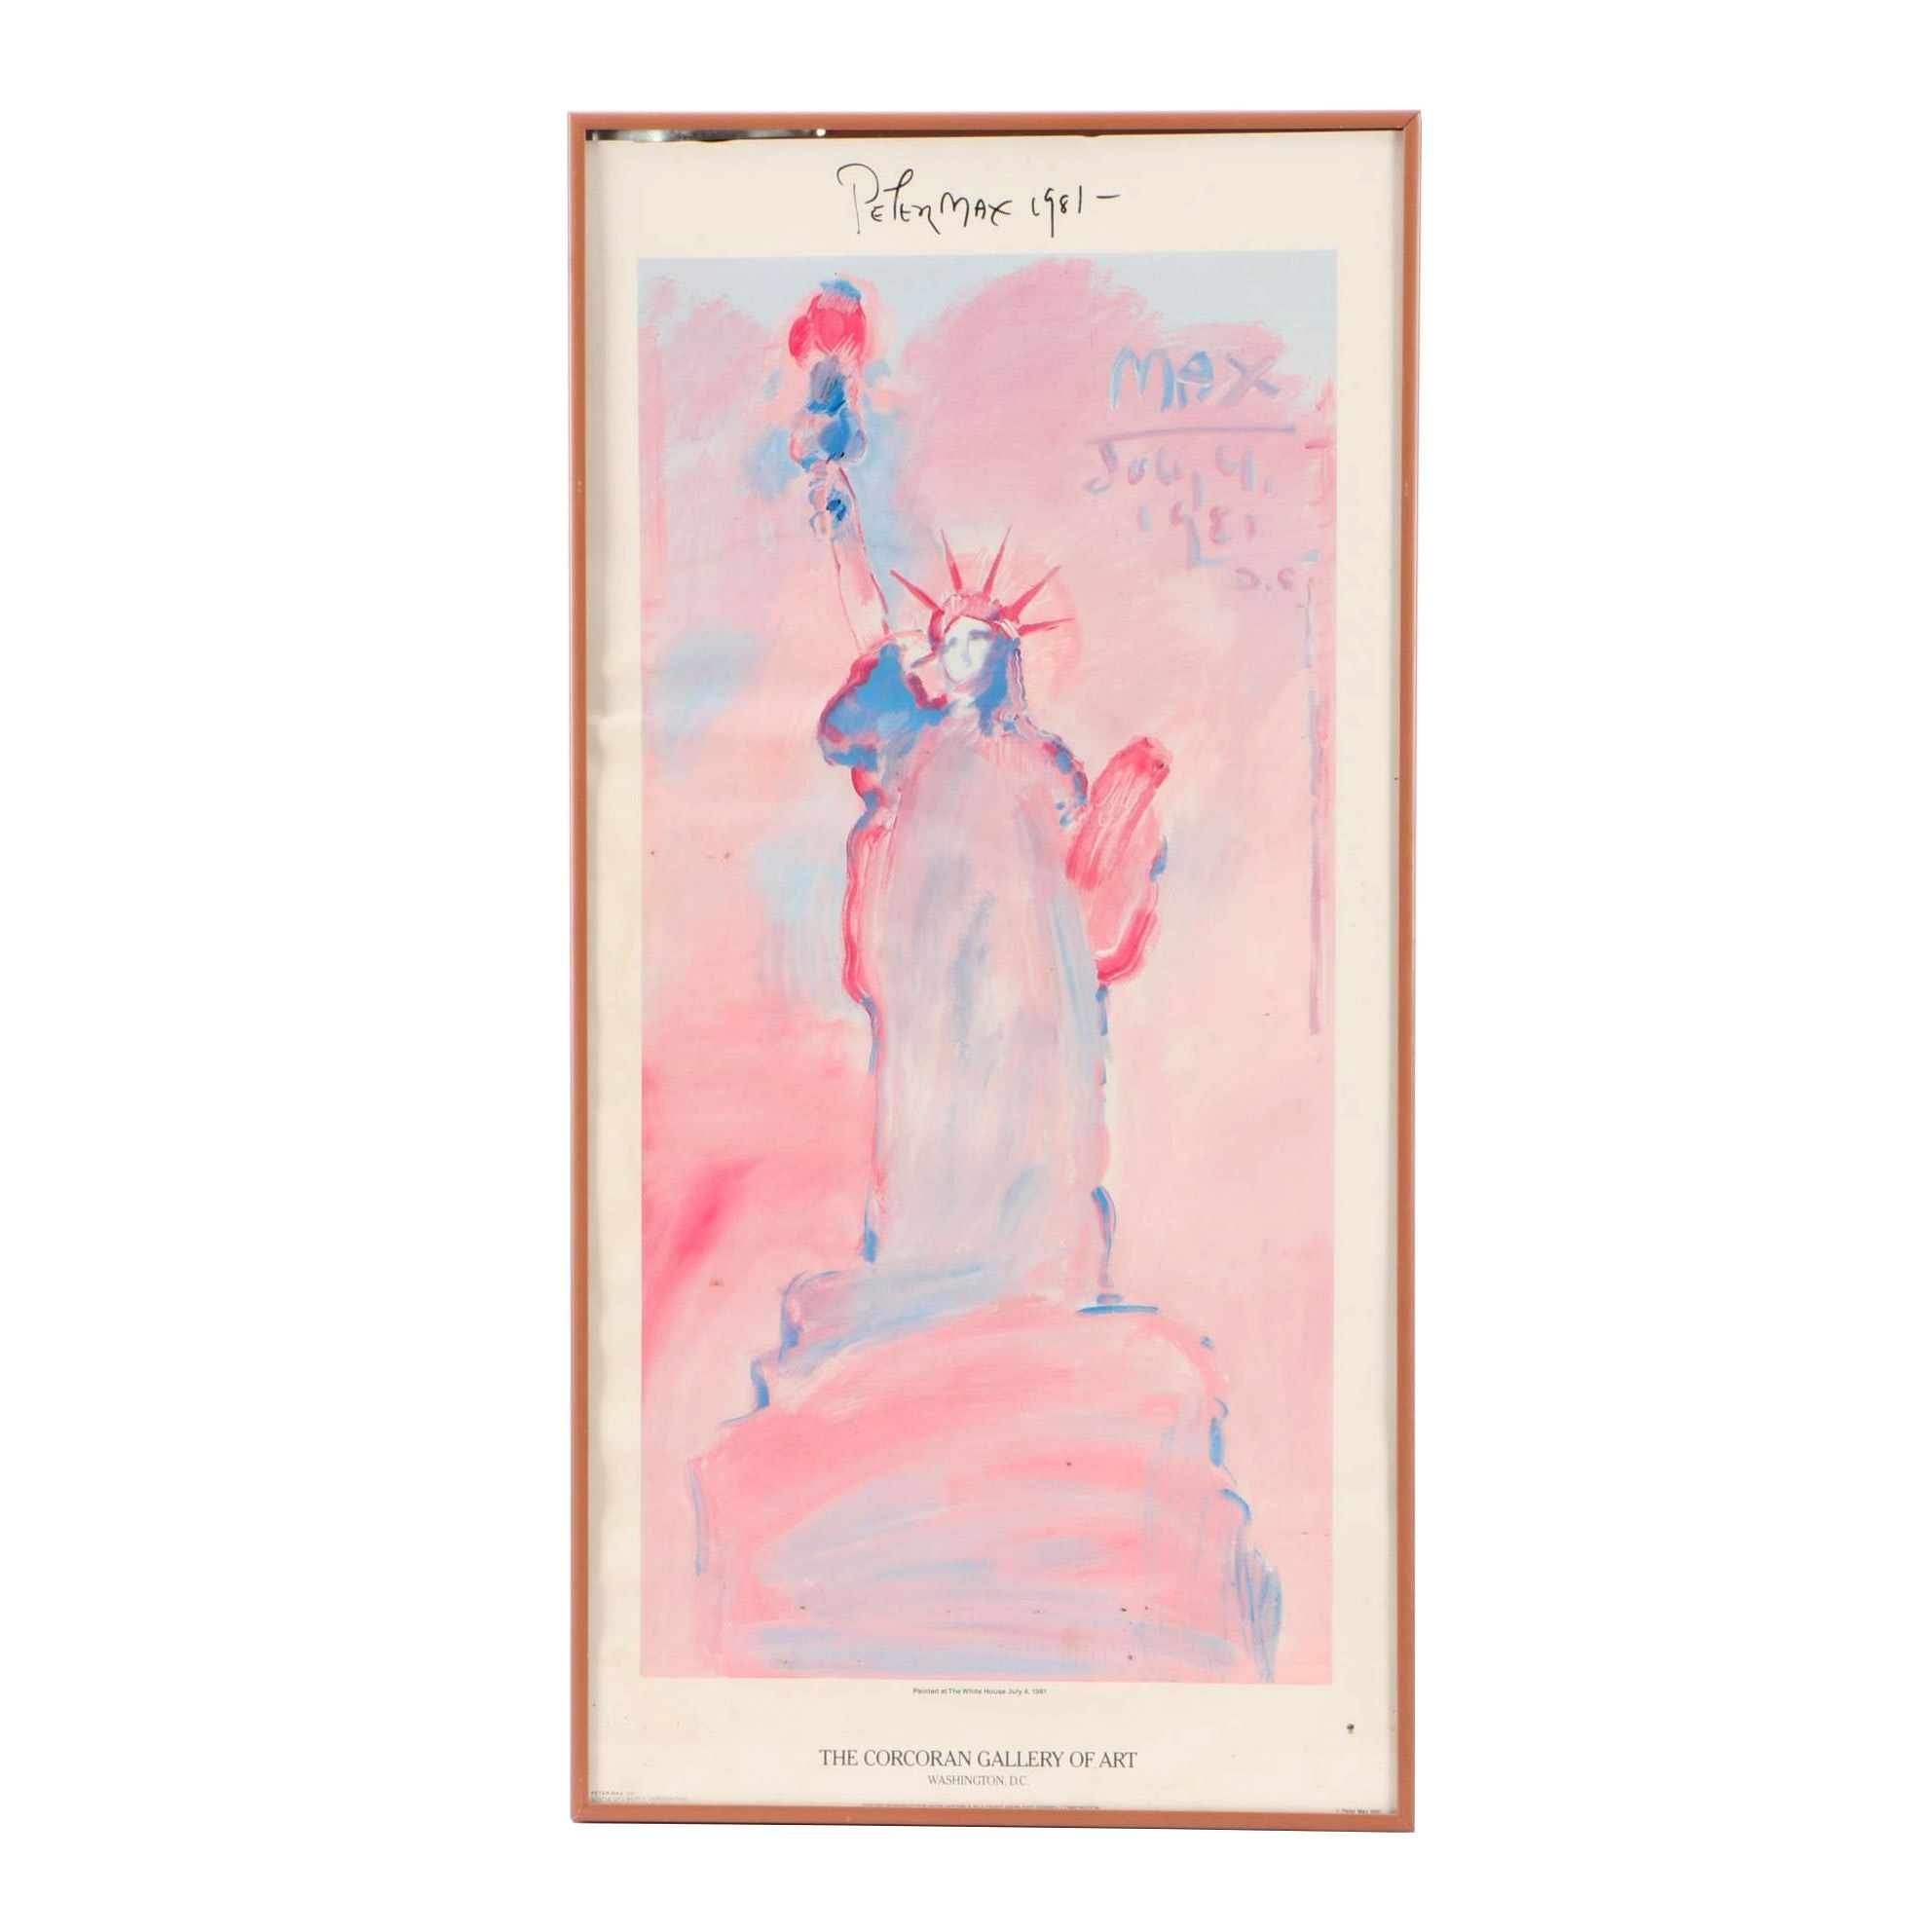 Autographed 1981 Peter Max Poster for the Corcoran Gallery of Art